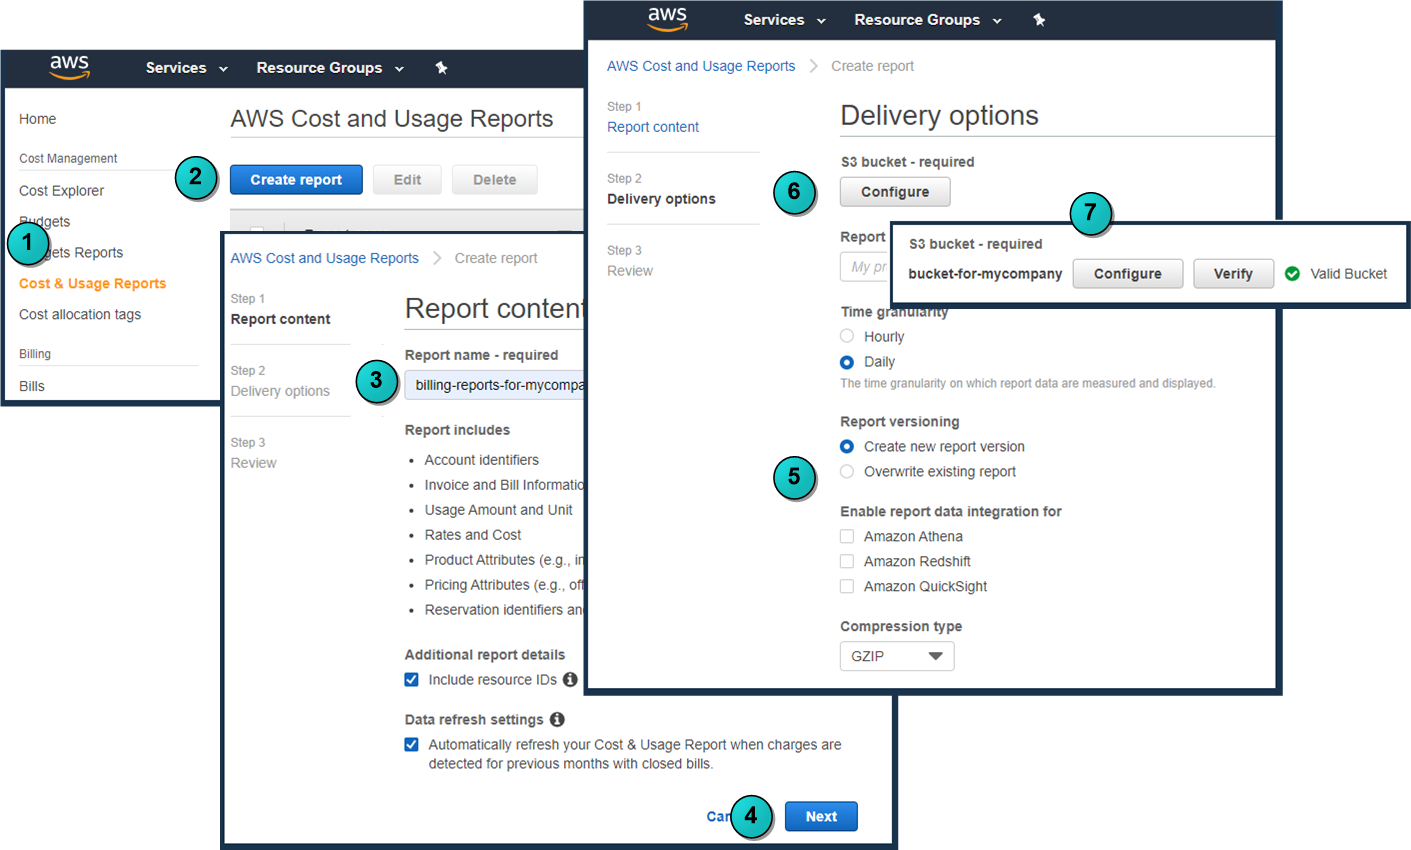 AWS Data Collection Prerequisites for an IAM Role